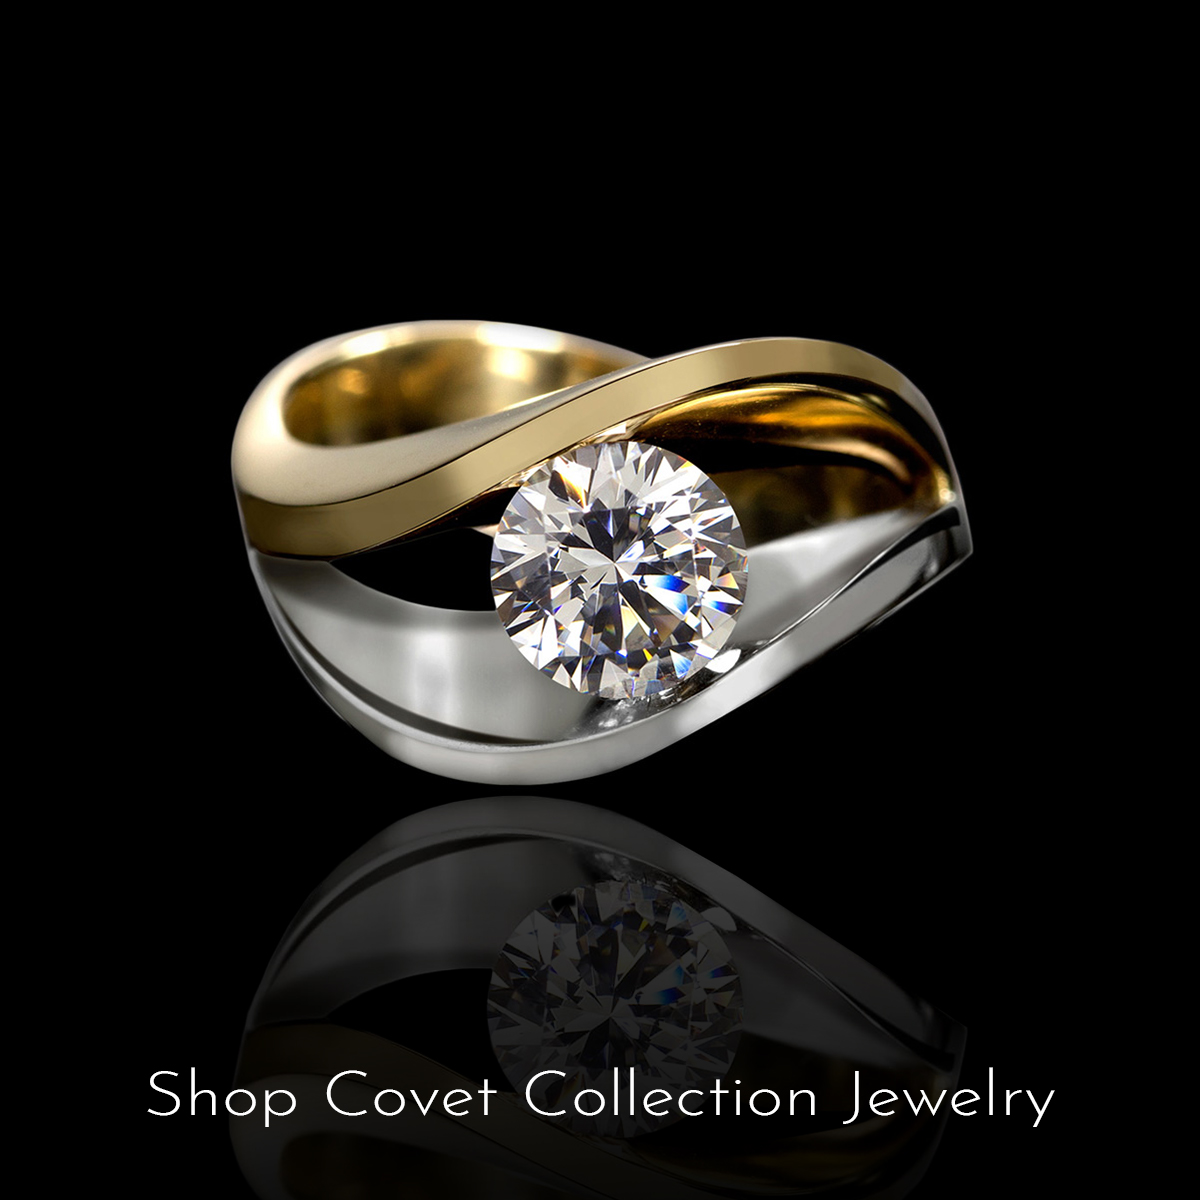 Covet Collection Tile